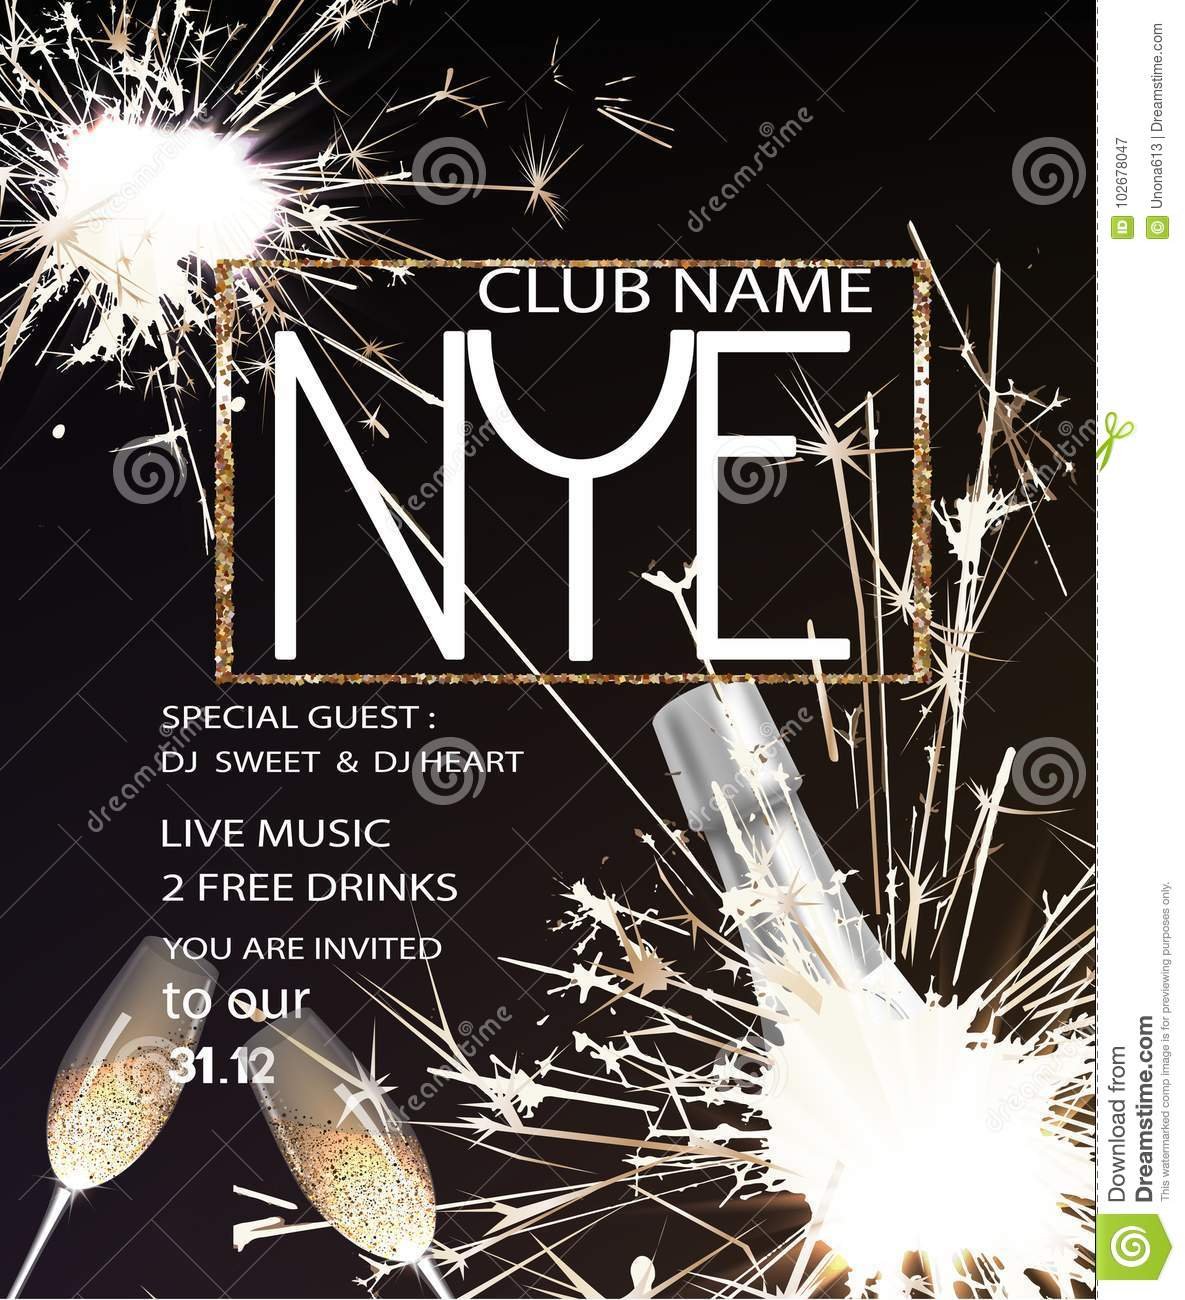 new year eve party invitation card with bottle of champagne glasses and sparklers